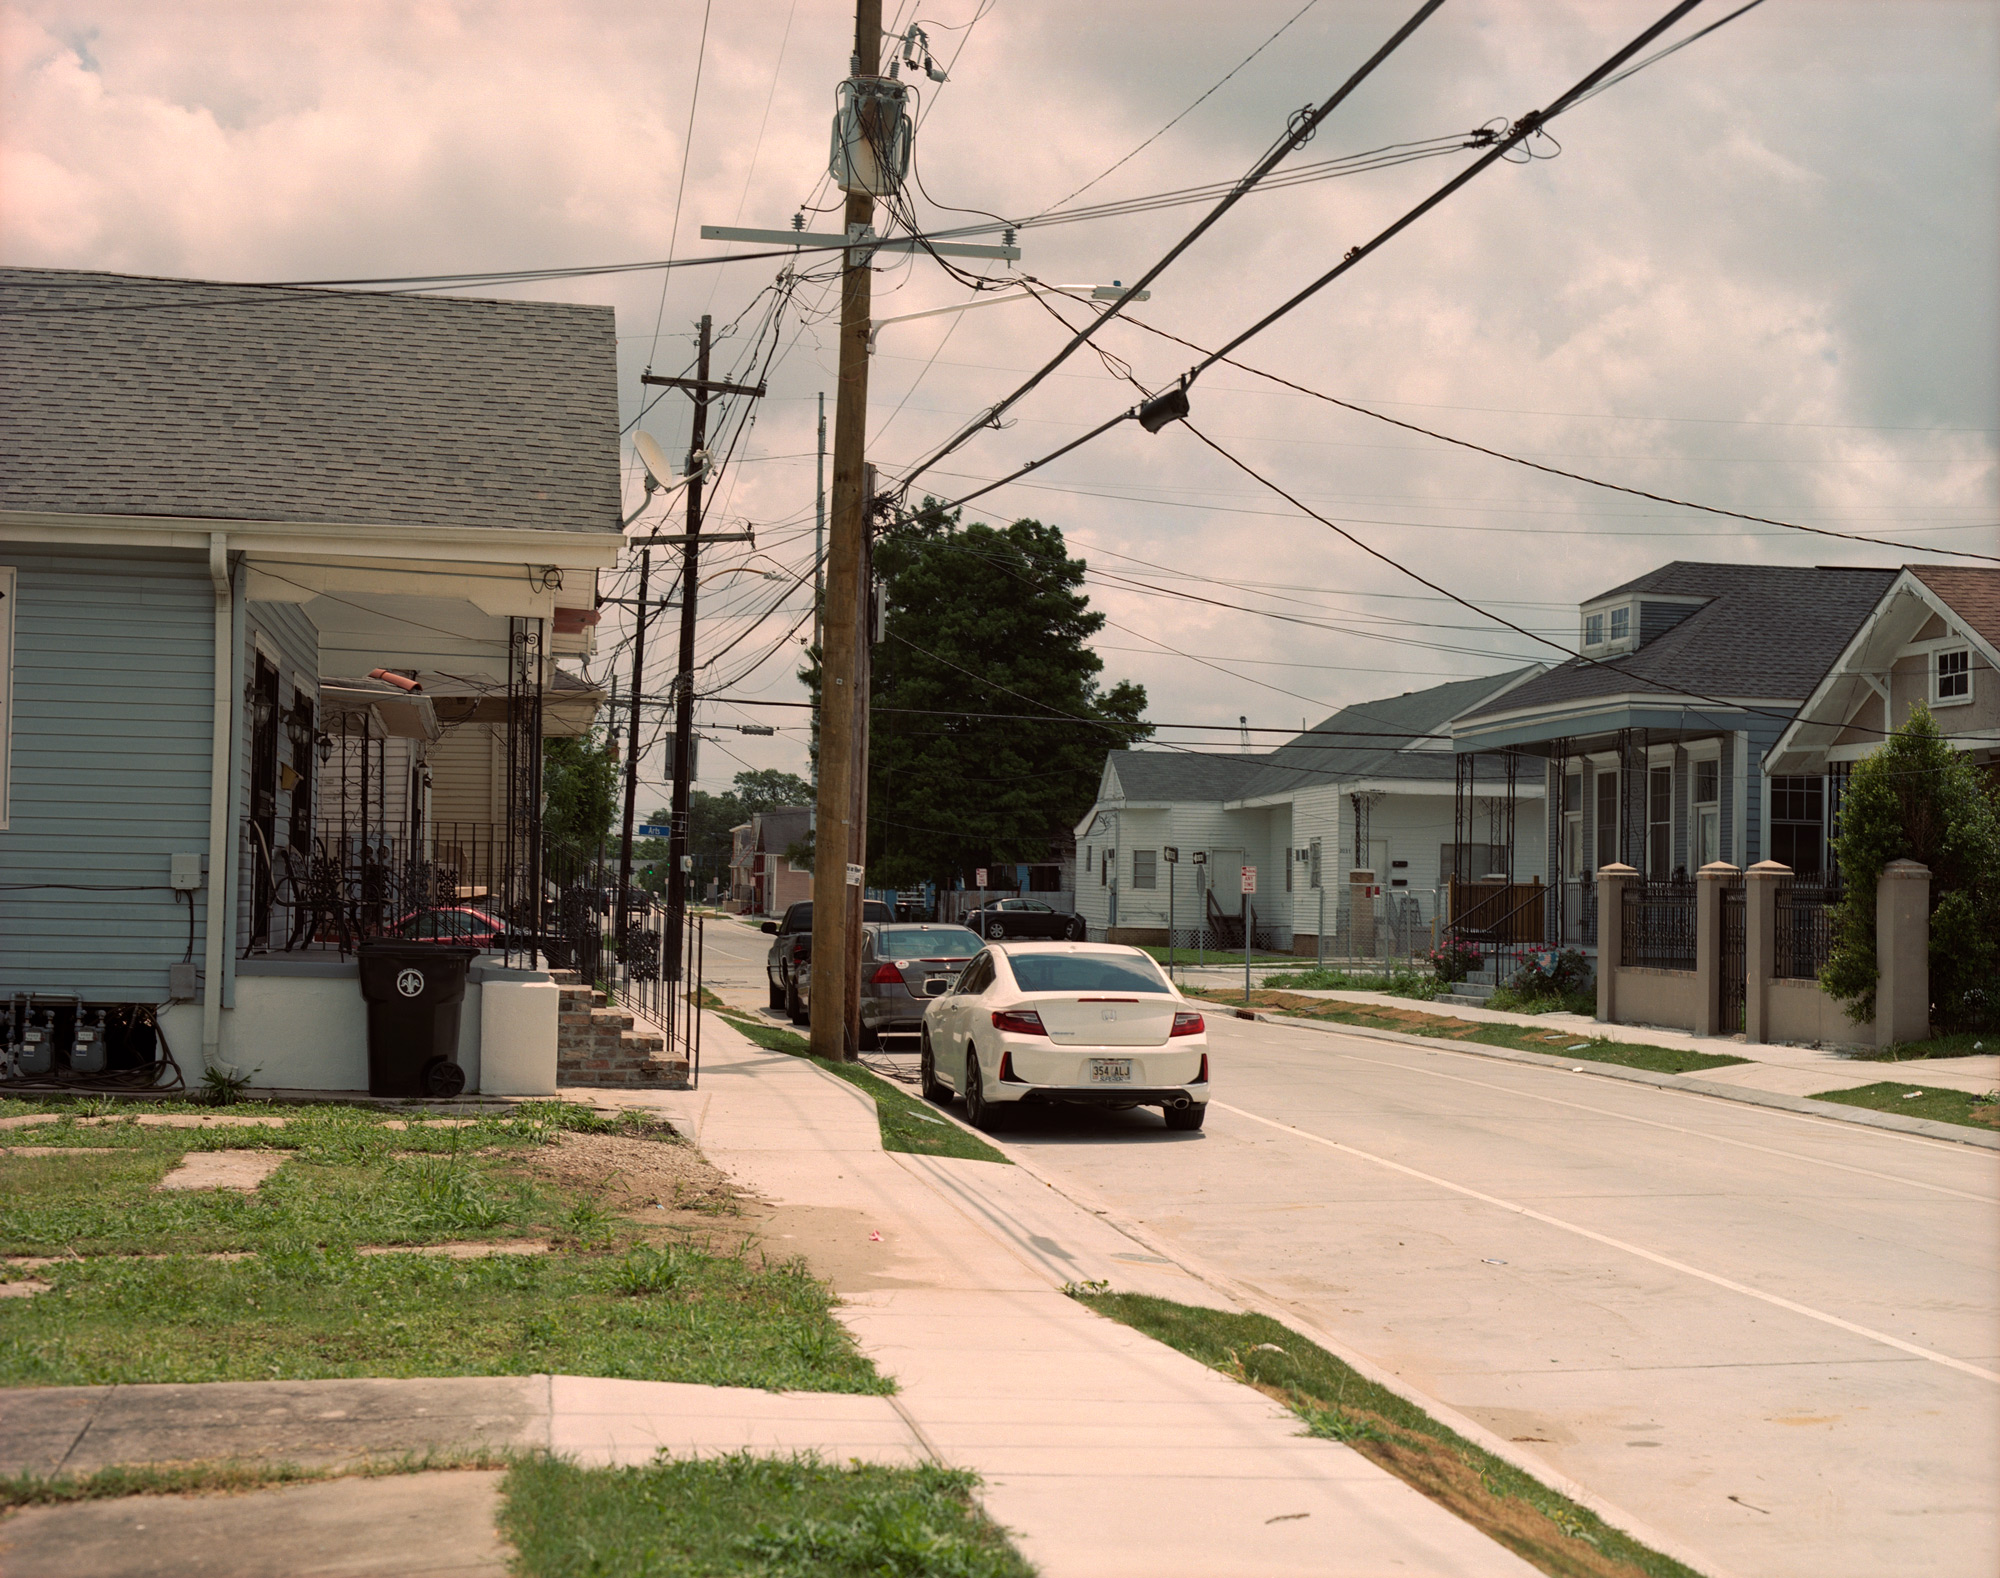 Arts Street, New Orleans, Omg Your English, Photography by Ioannis Koussertari